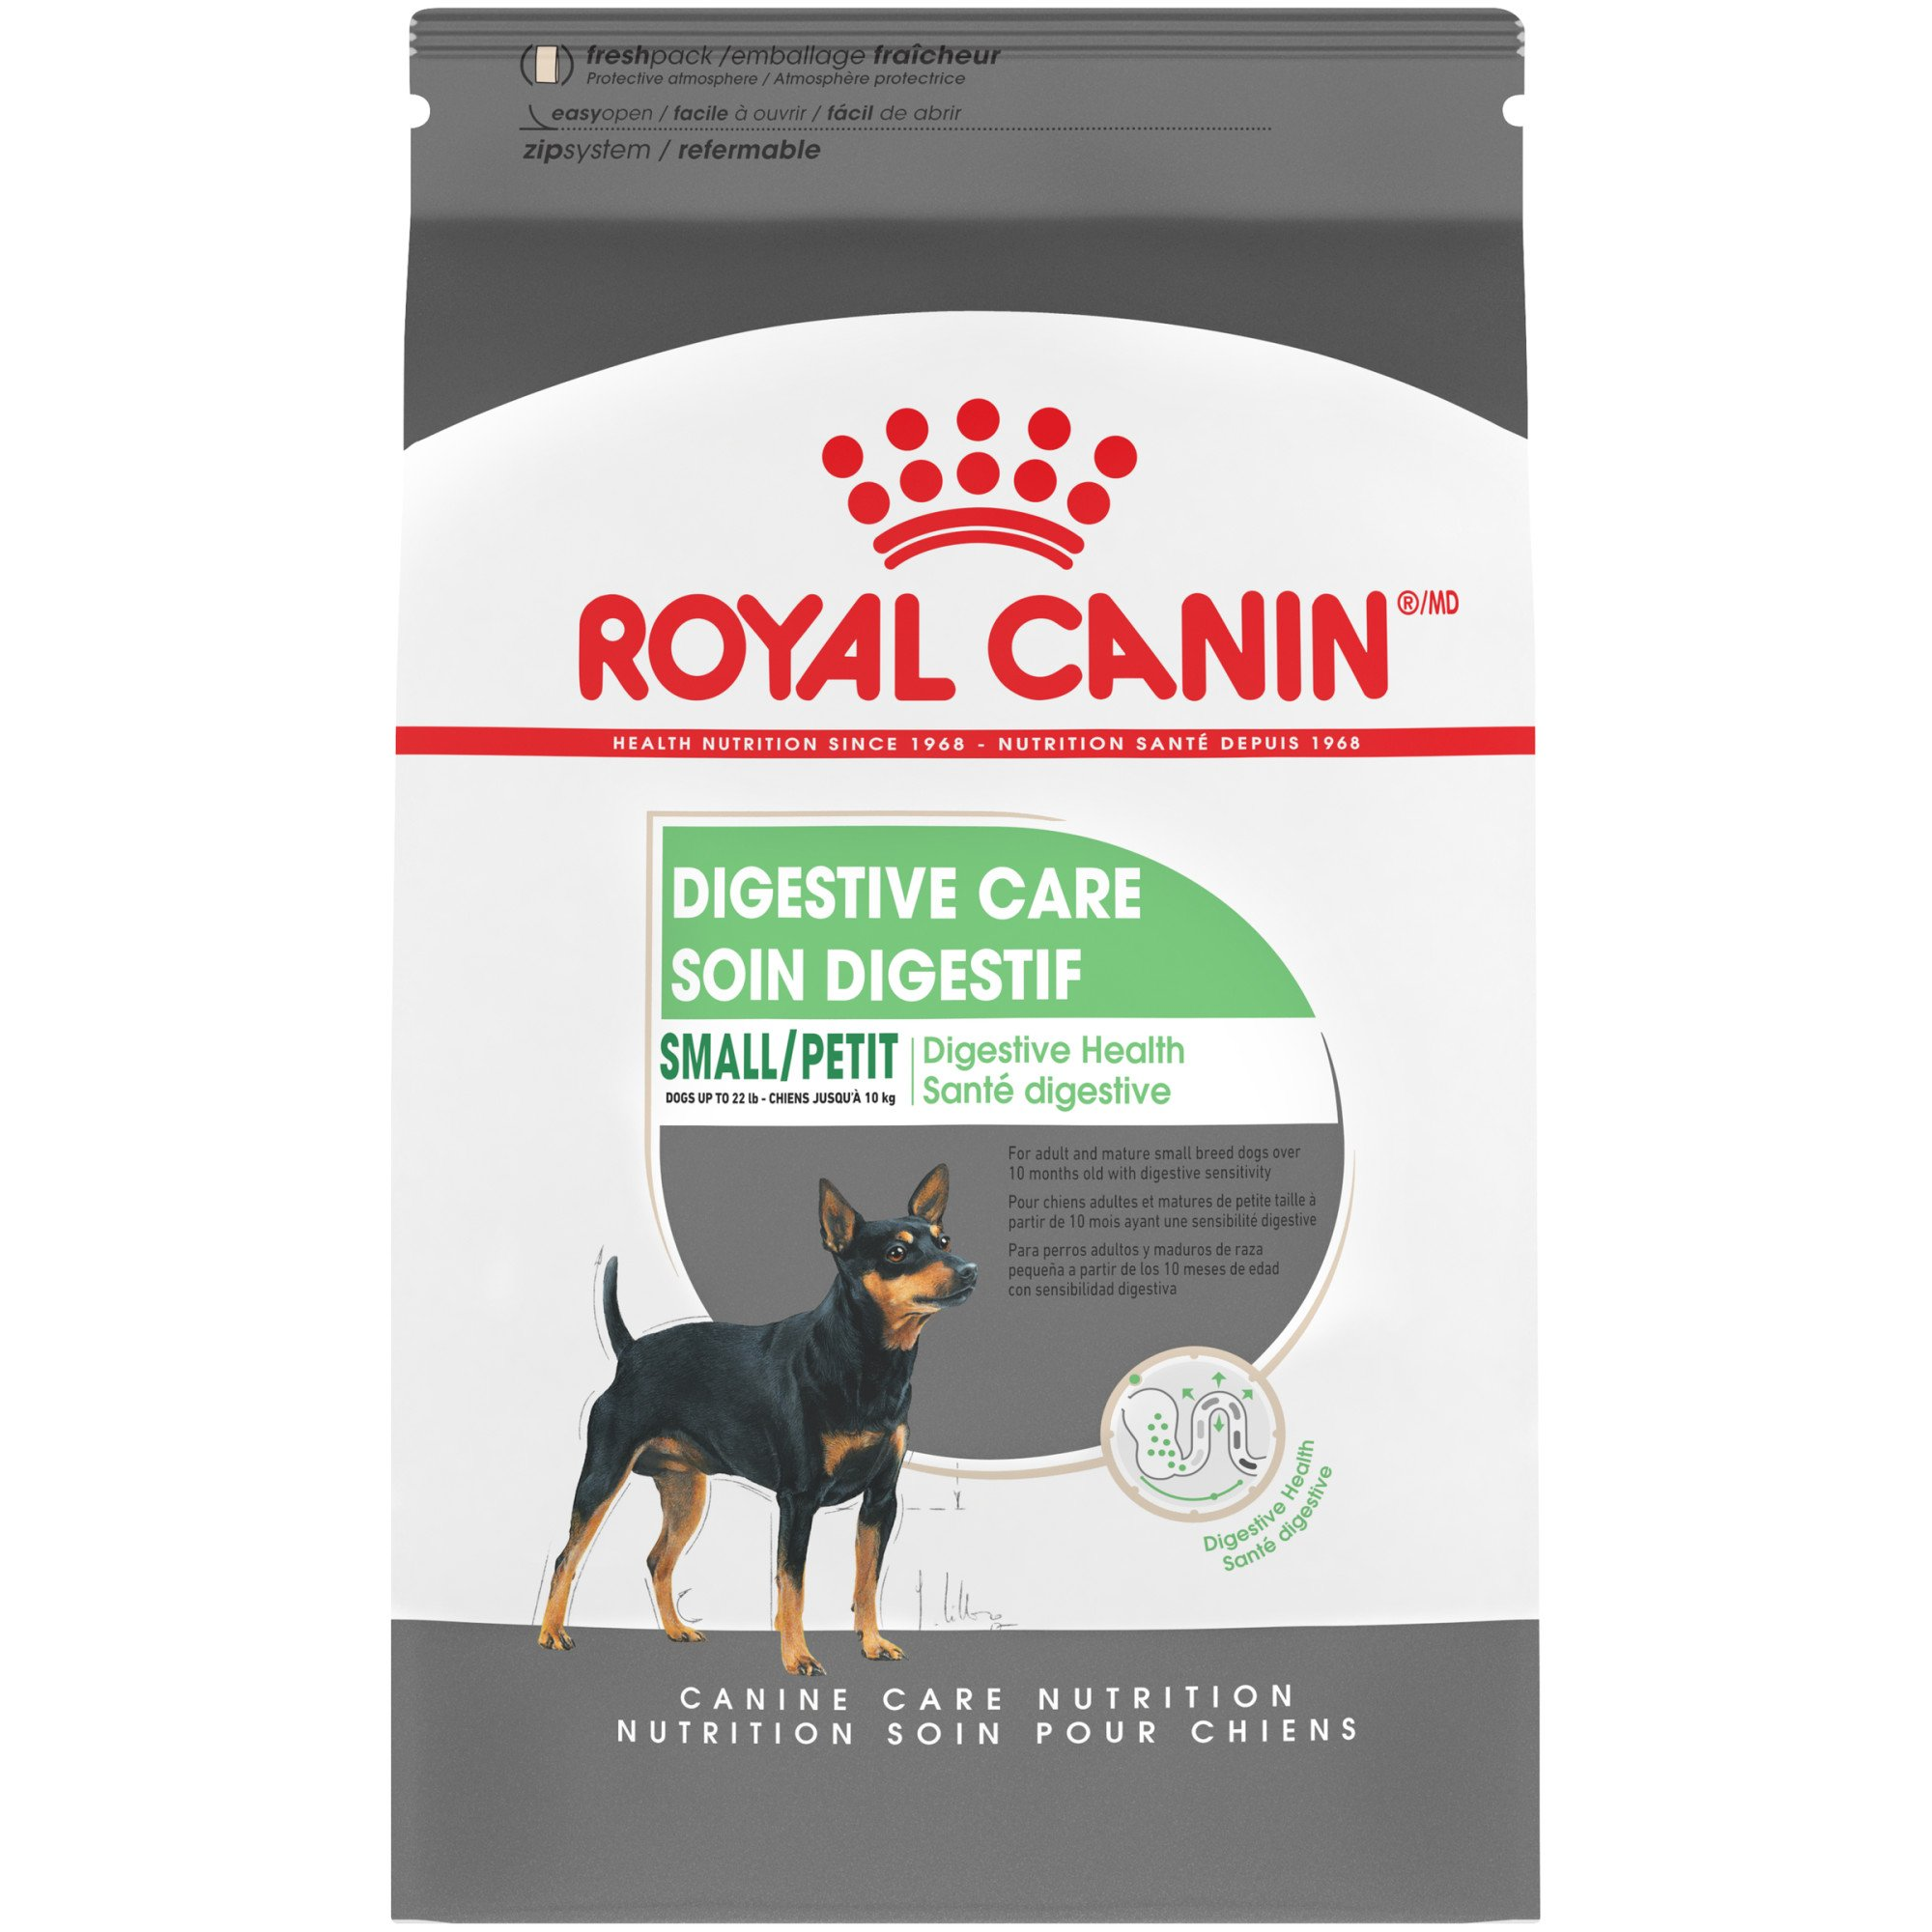 Royal Canin Dog breeds